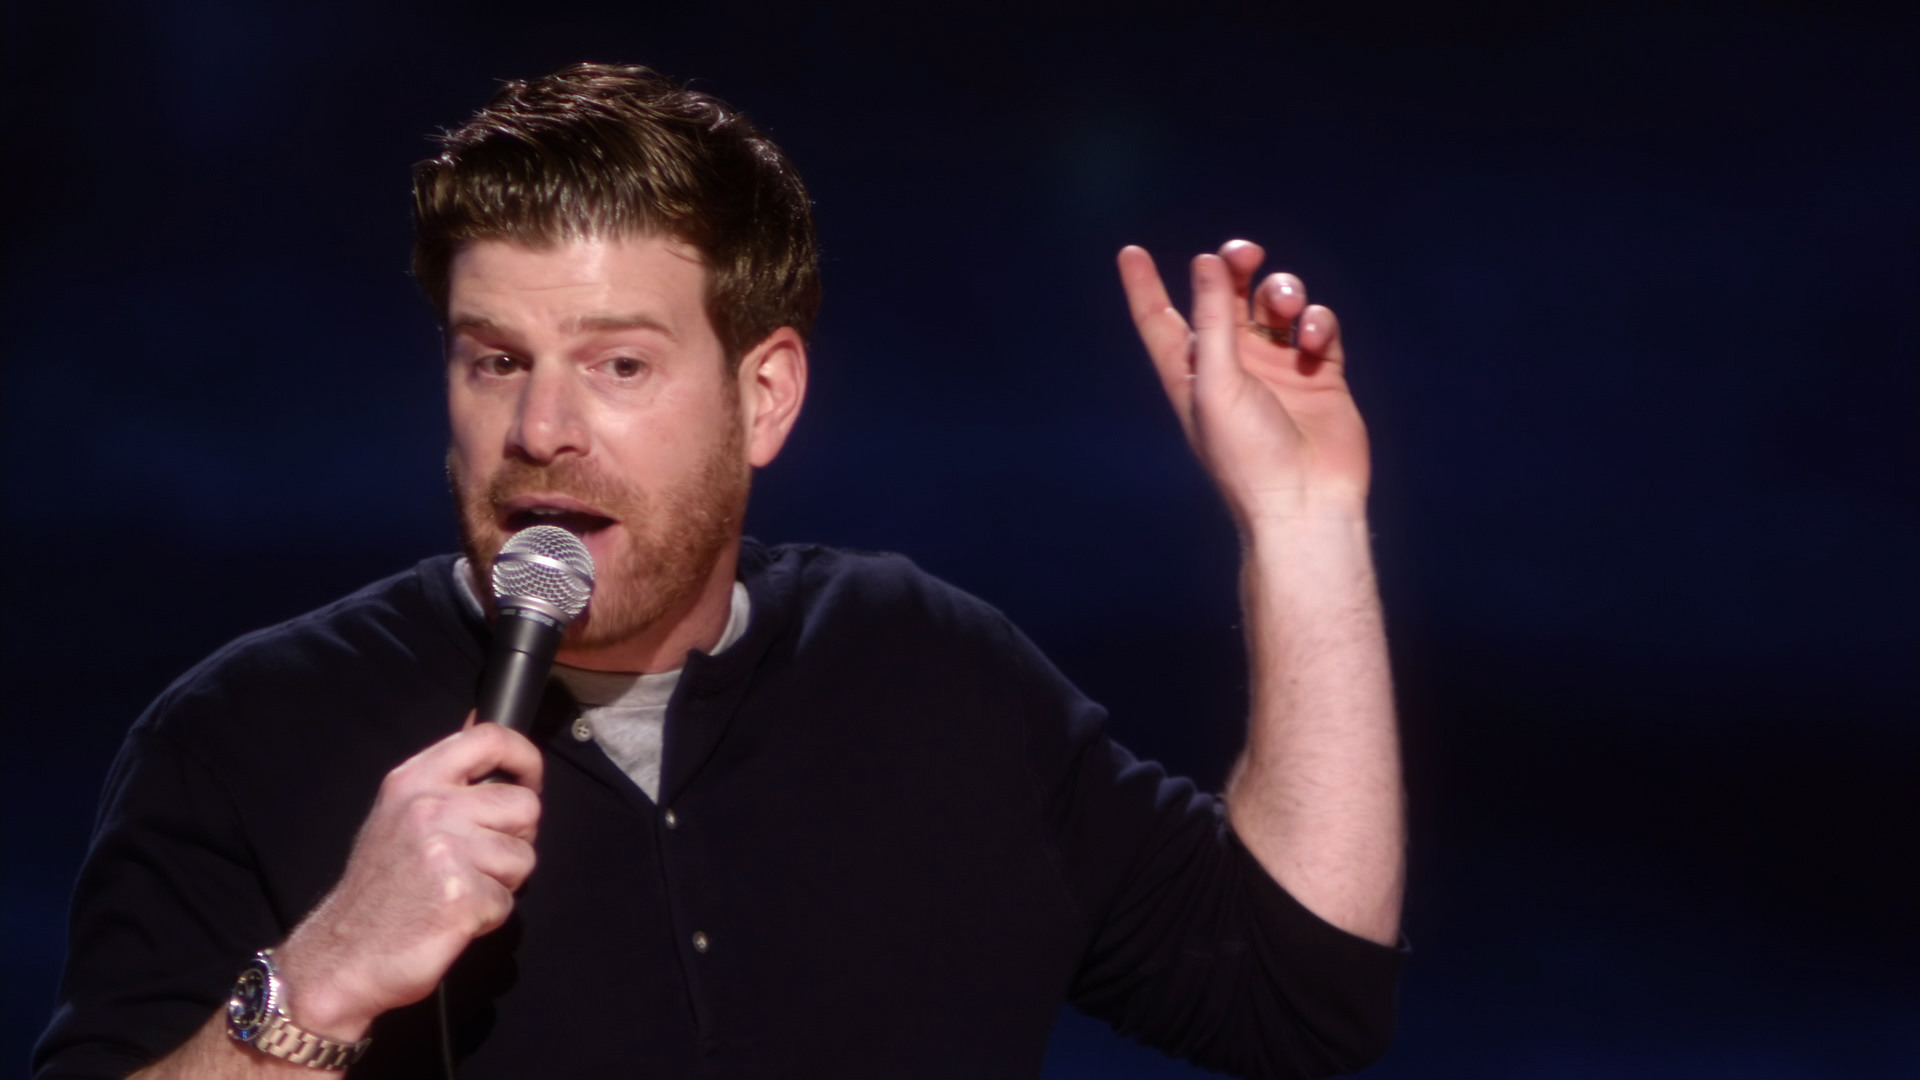 Uncensored - Steve Rannazzisi - Unnecessary Turbulence